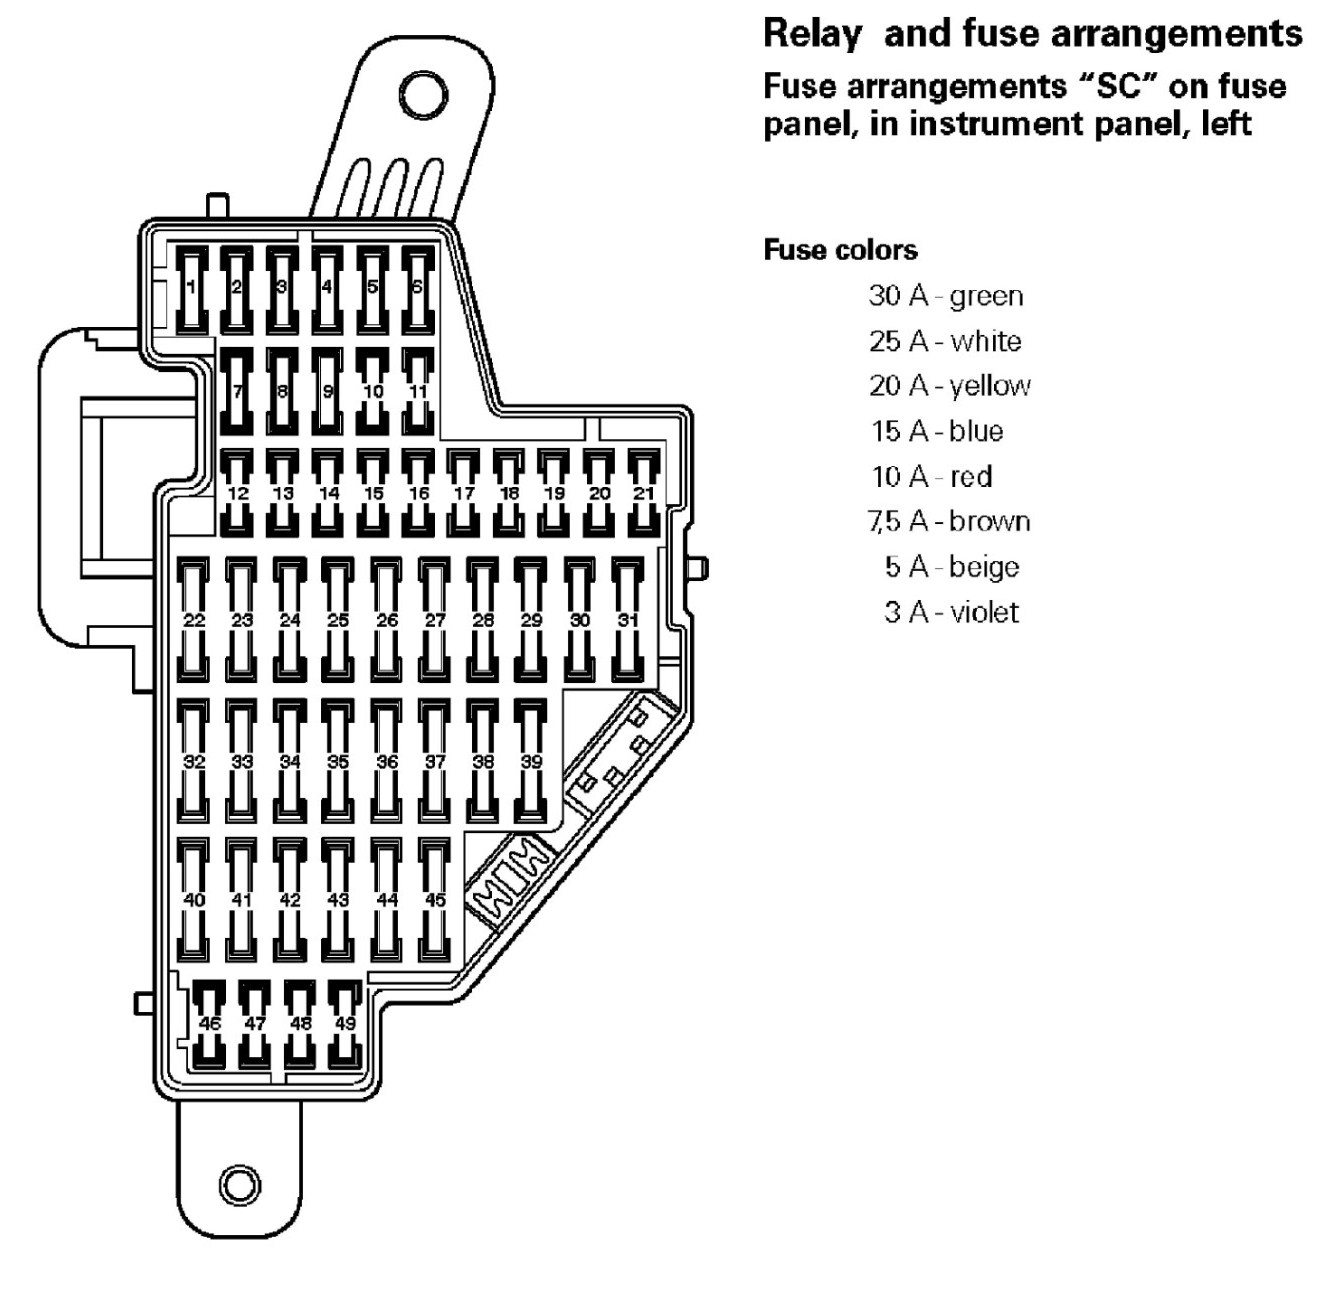 hight resolution of 06 vw jetta fuse diagram blog wiring diagram 2006 vw jetta gli fuse box diagram 06